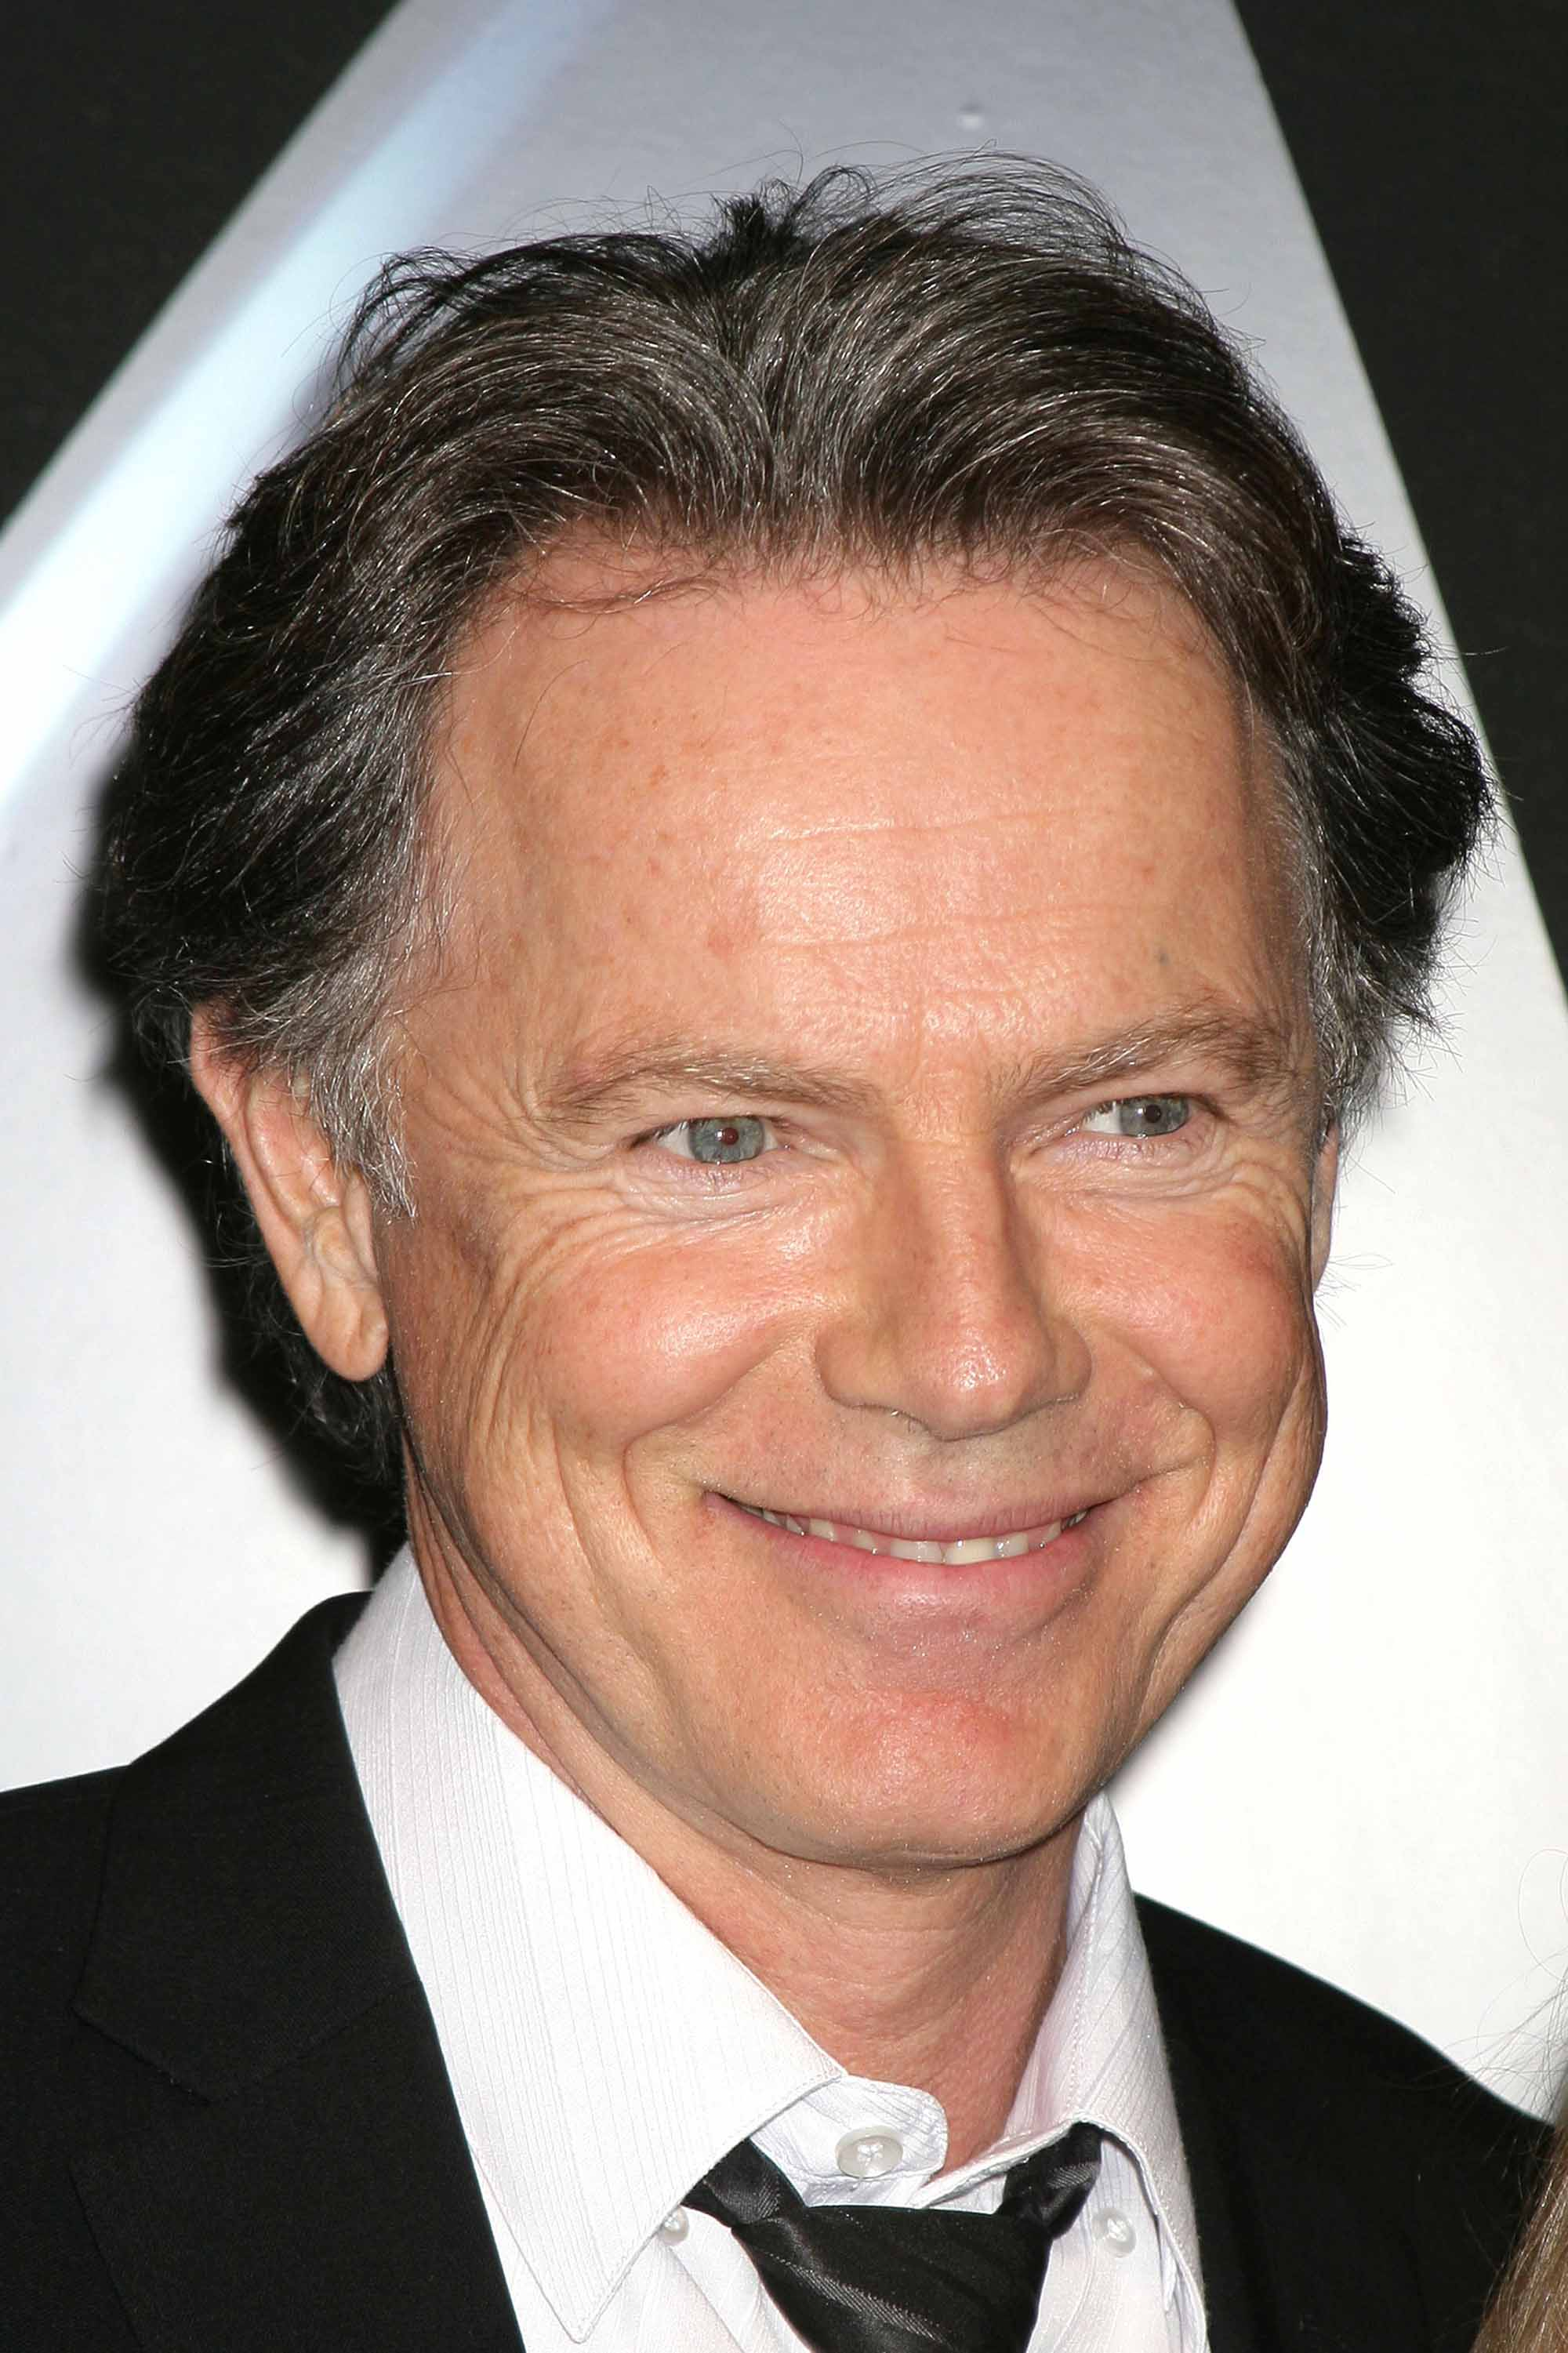 Forum on this topic: Julie Stevens (American radio actress), bruce-greenwood/